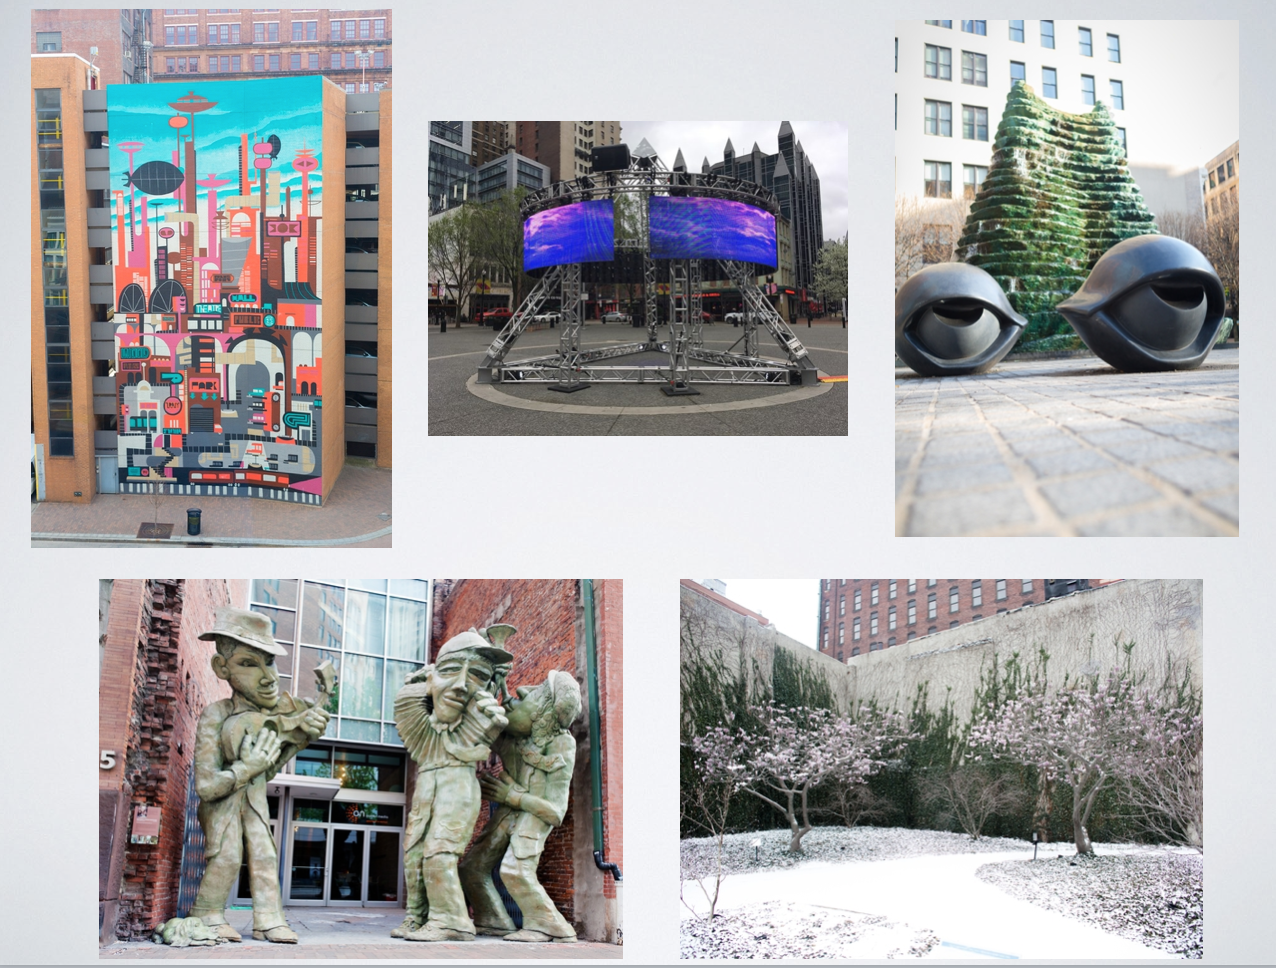 Source: Pittsburgh Art Places, from left to right: Yesterday's Tomorrow, Streaming Sound, Agnes Katz Plaza, Liberty Avenue Musicians, Magnolias for Pittsburgh.